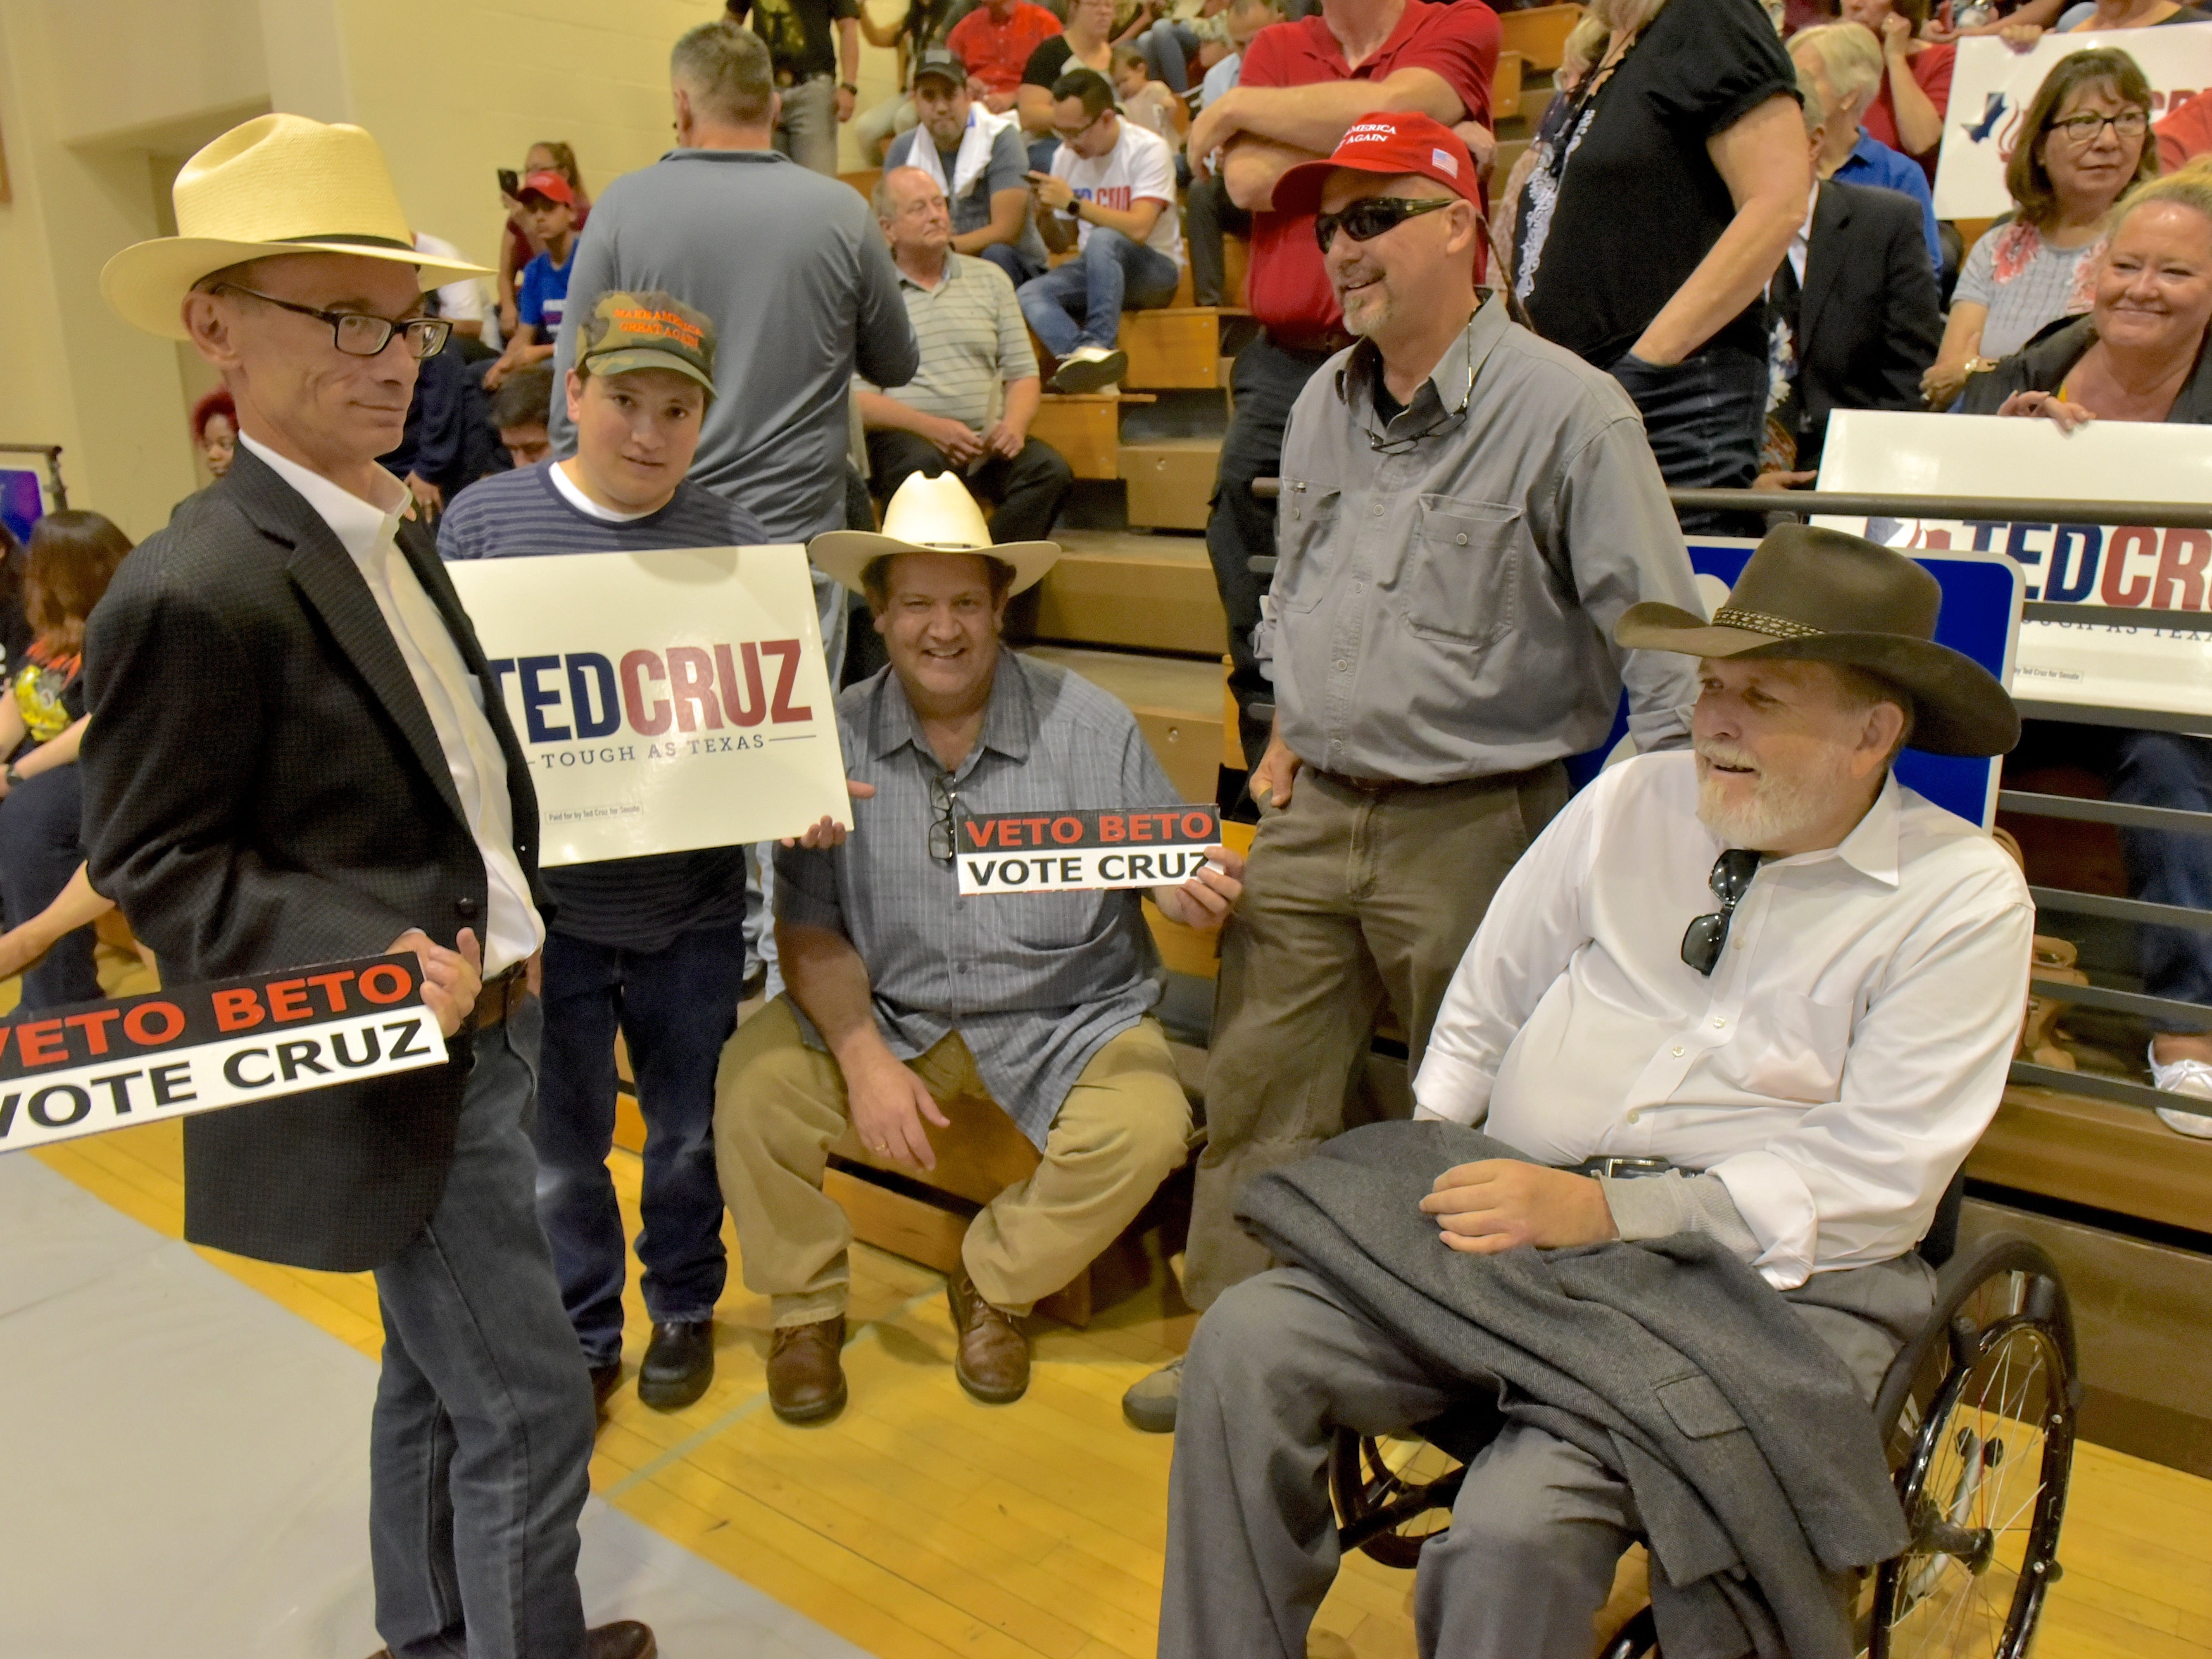 Supporters of Texas Senator Ted Cruz wait for Cruz to appear as he made a stop in El Paso Saturday night at Franklin High School on El Paso's westside.